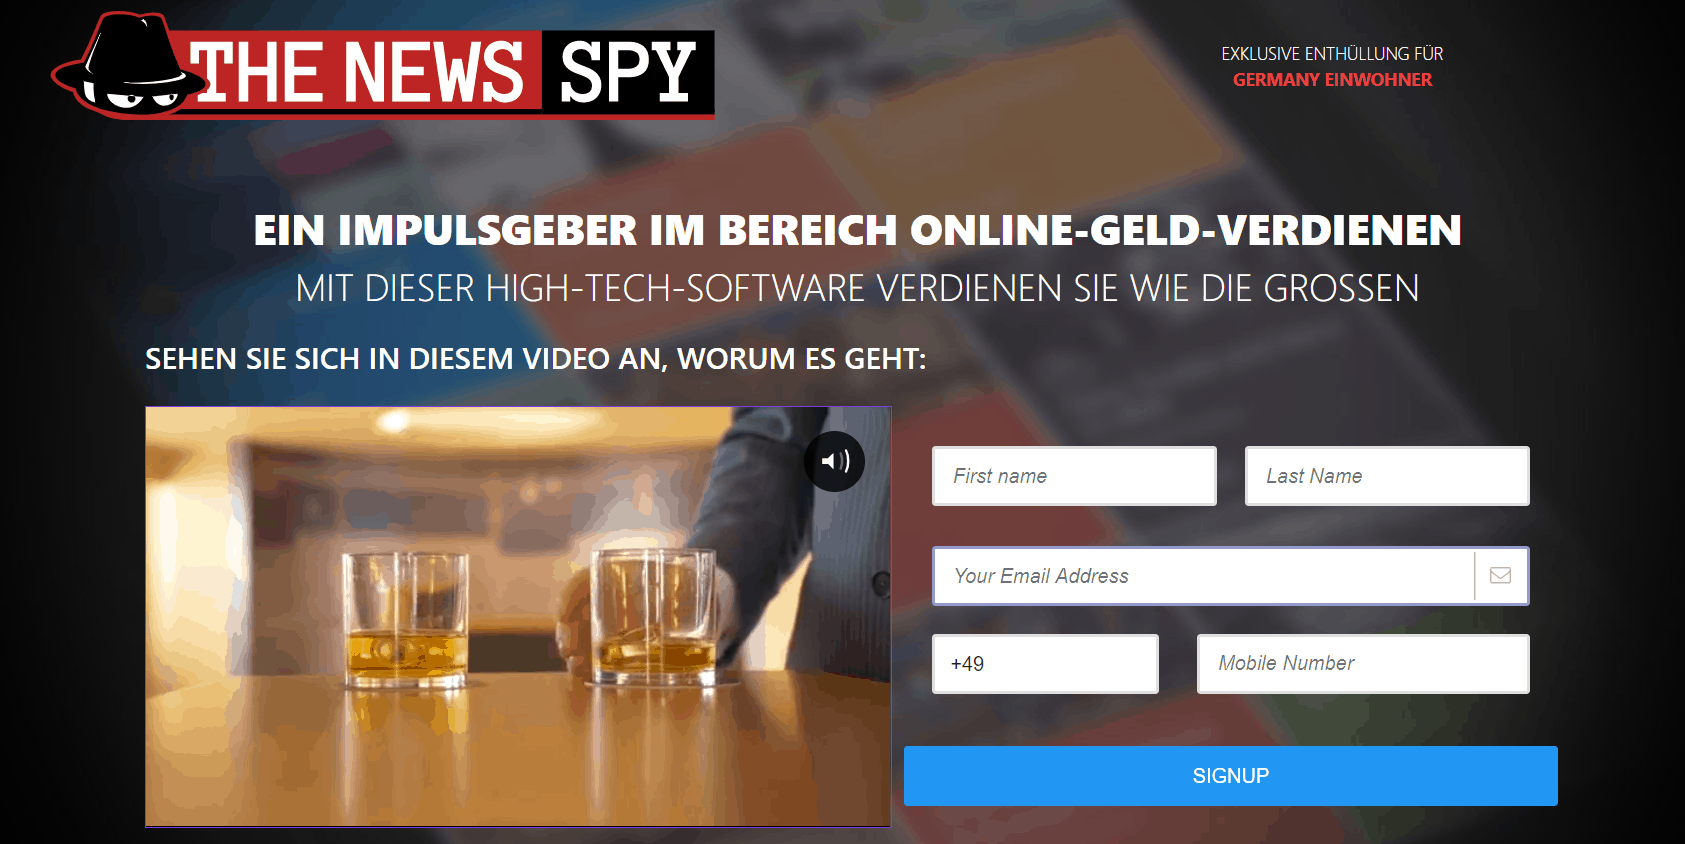 News spy german July 4, 2020